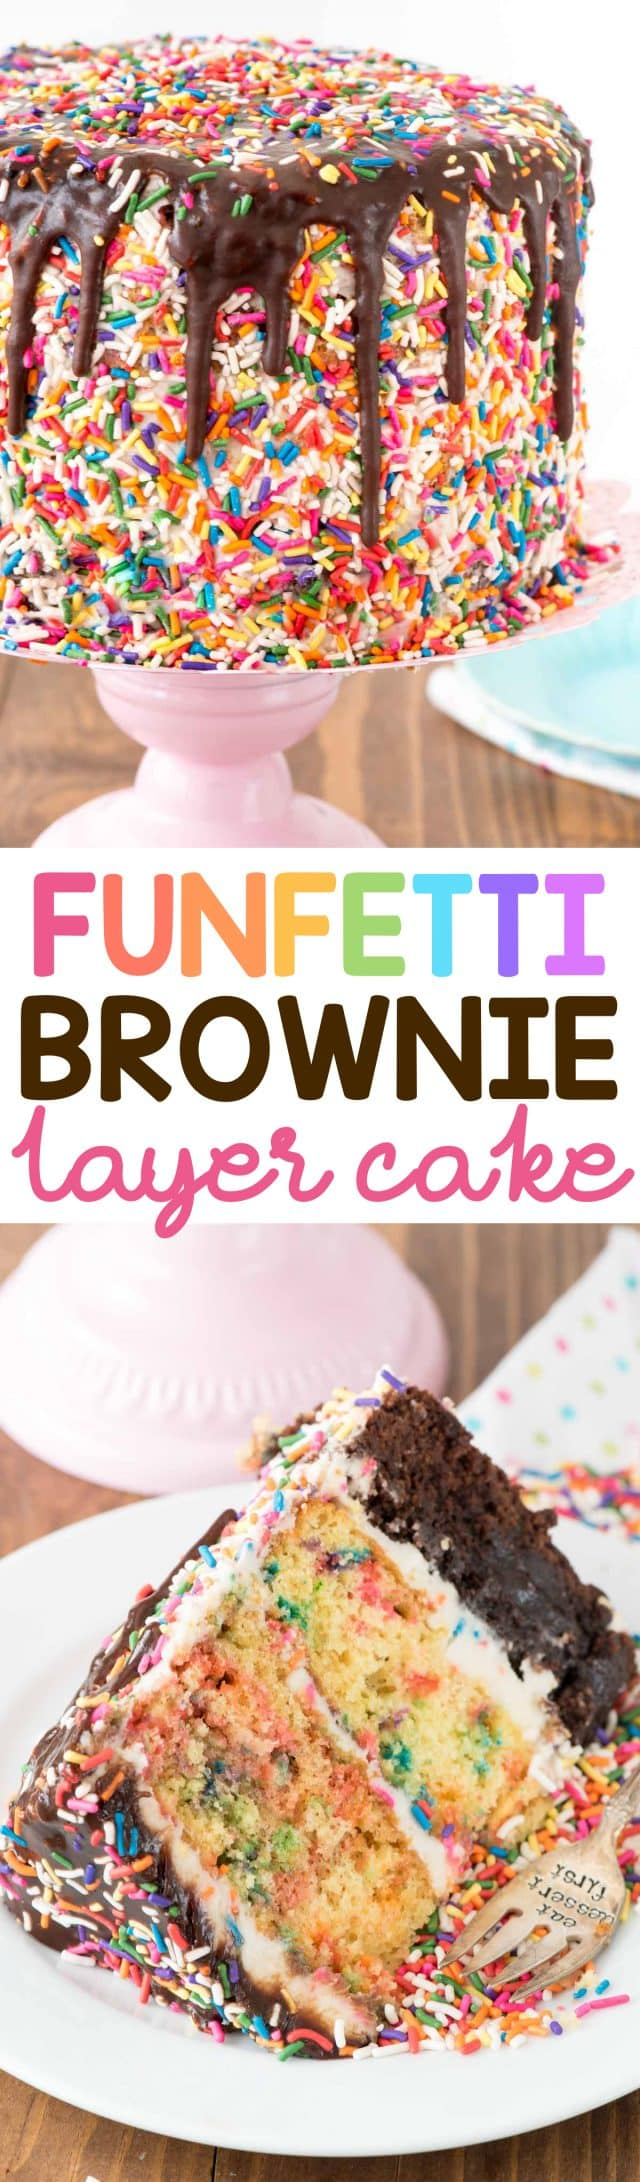 Funfetti Brownie Layer Cake - this cake is easier than it looks! There's a layer of brownie and two layers of confetti cake, filled with a cream cheese frosting and topped with a hot fudge chocolate drizzle! It's the PERFECT birthday cake recipe.